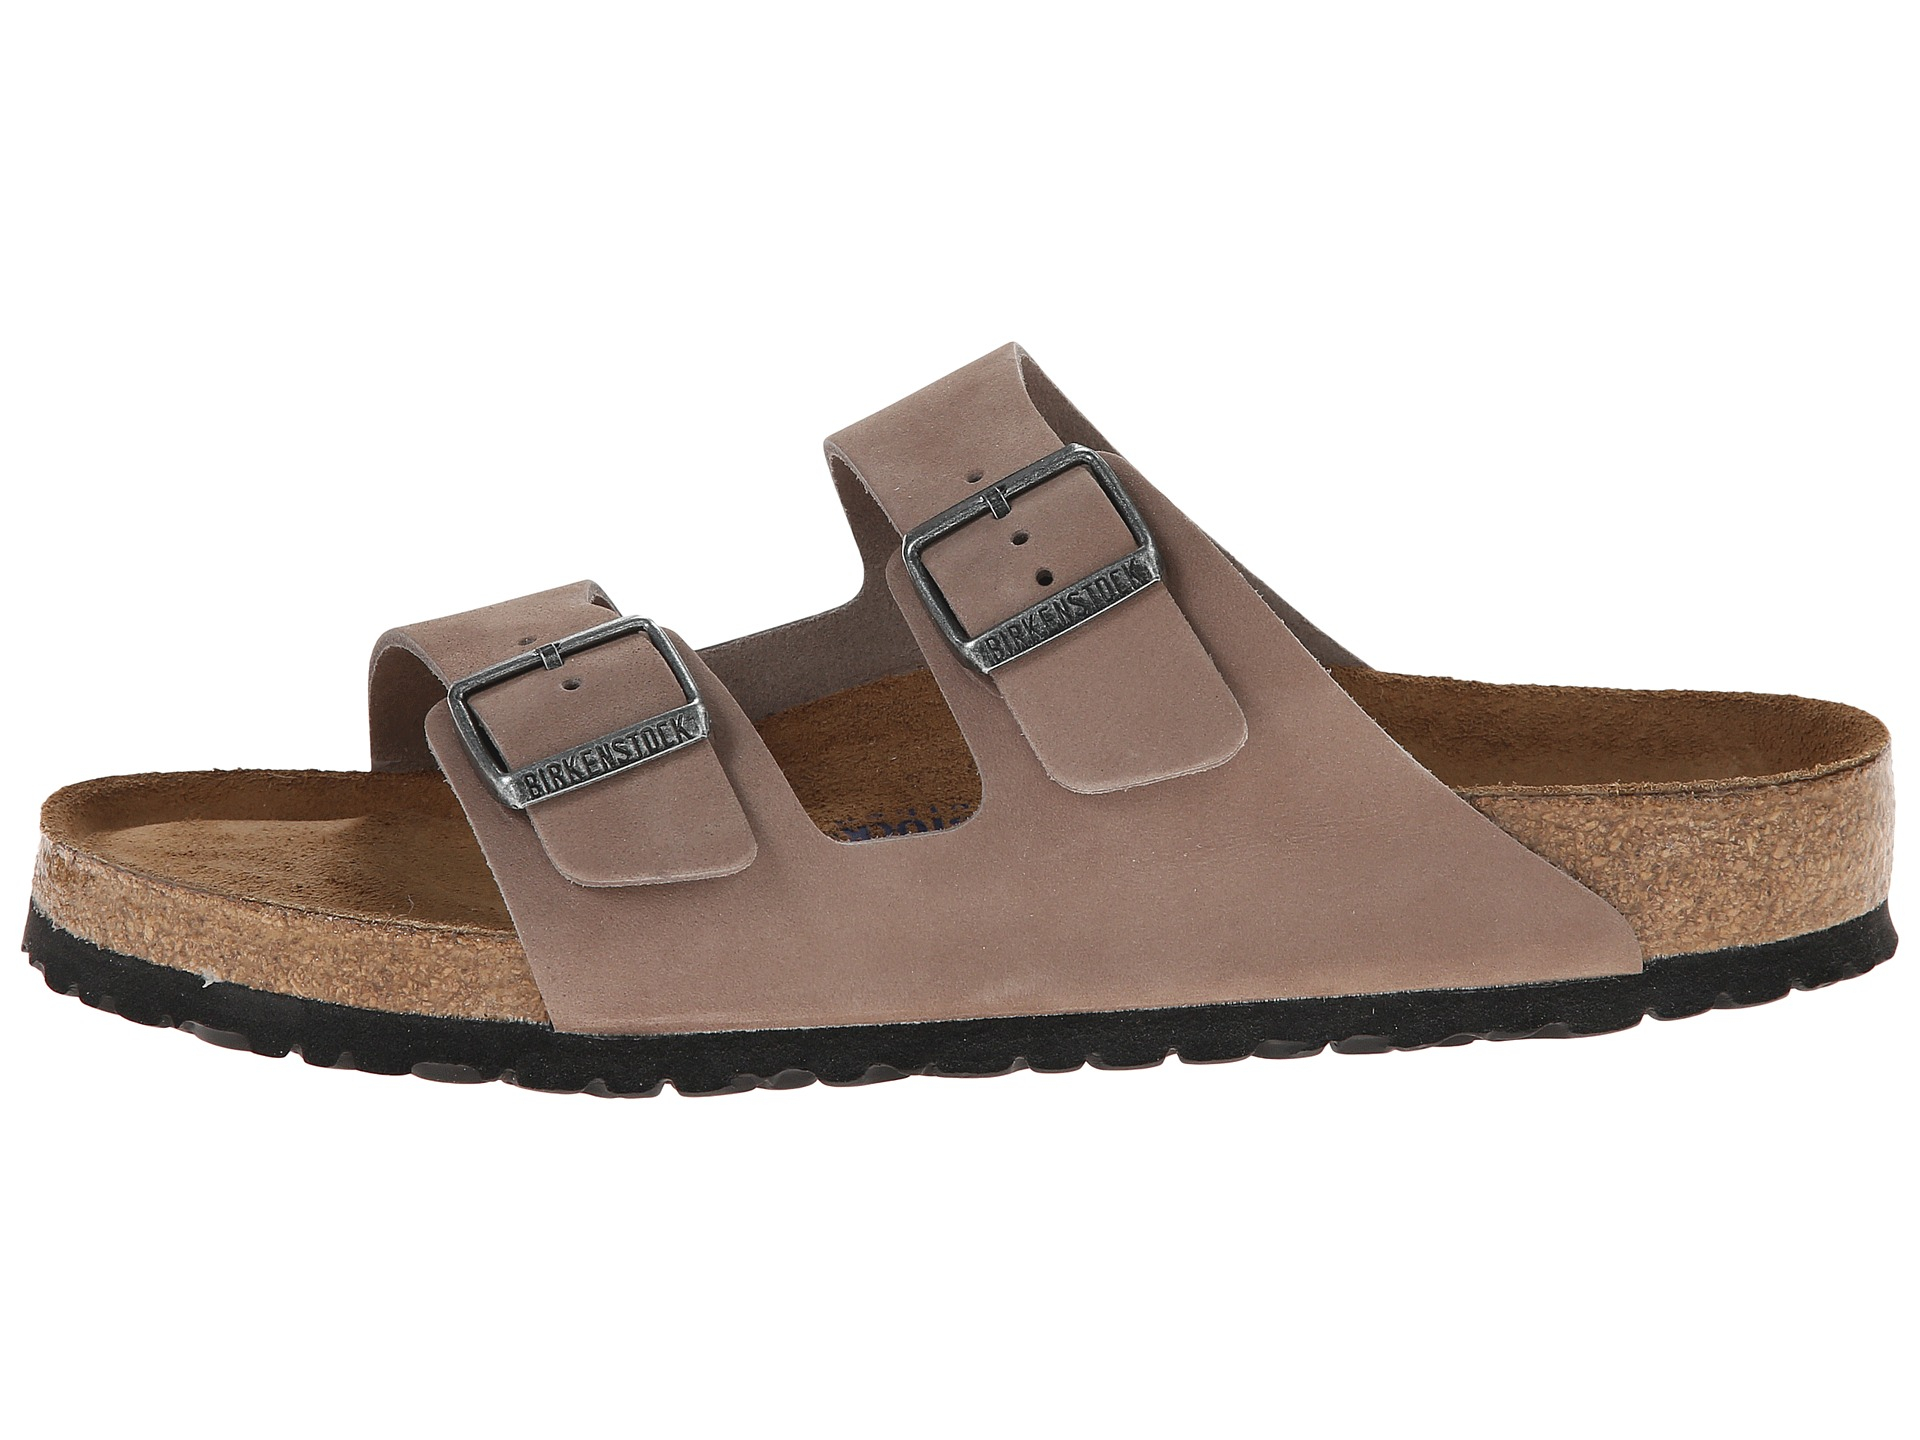 Lyst - Birkenstock Arizona Soft Footbed - Leather (unisex) in Natural dedfdb537c